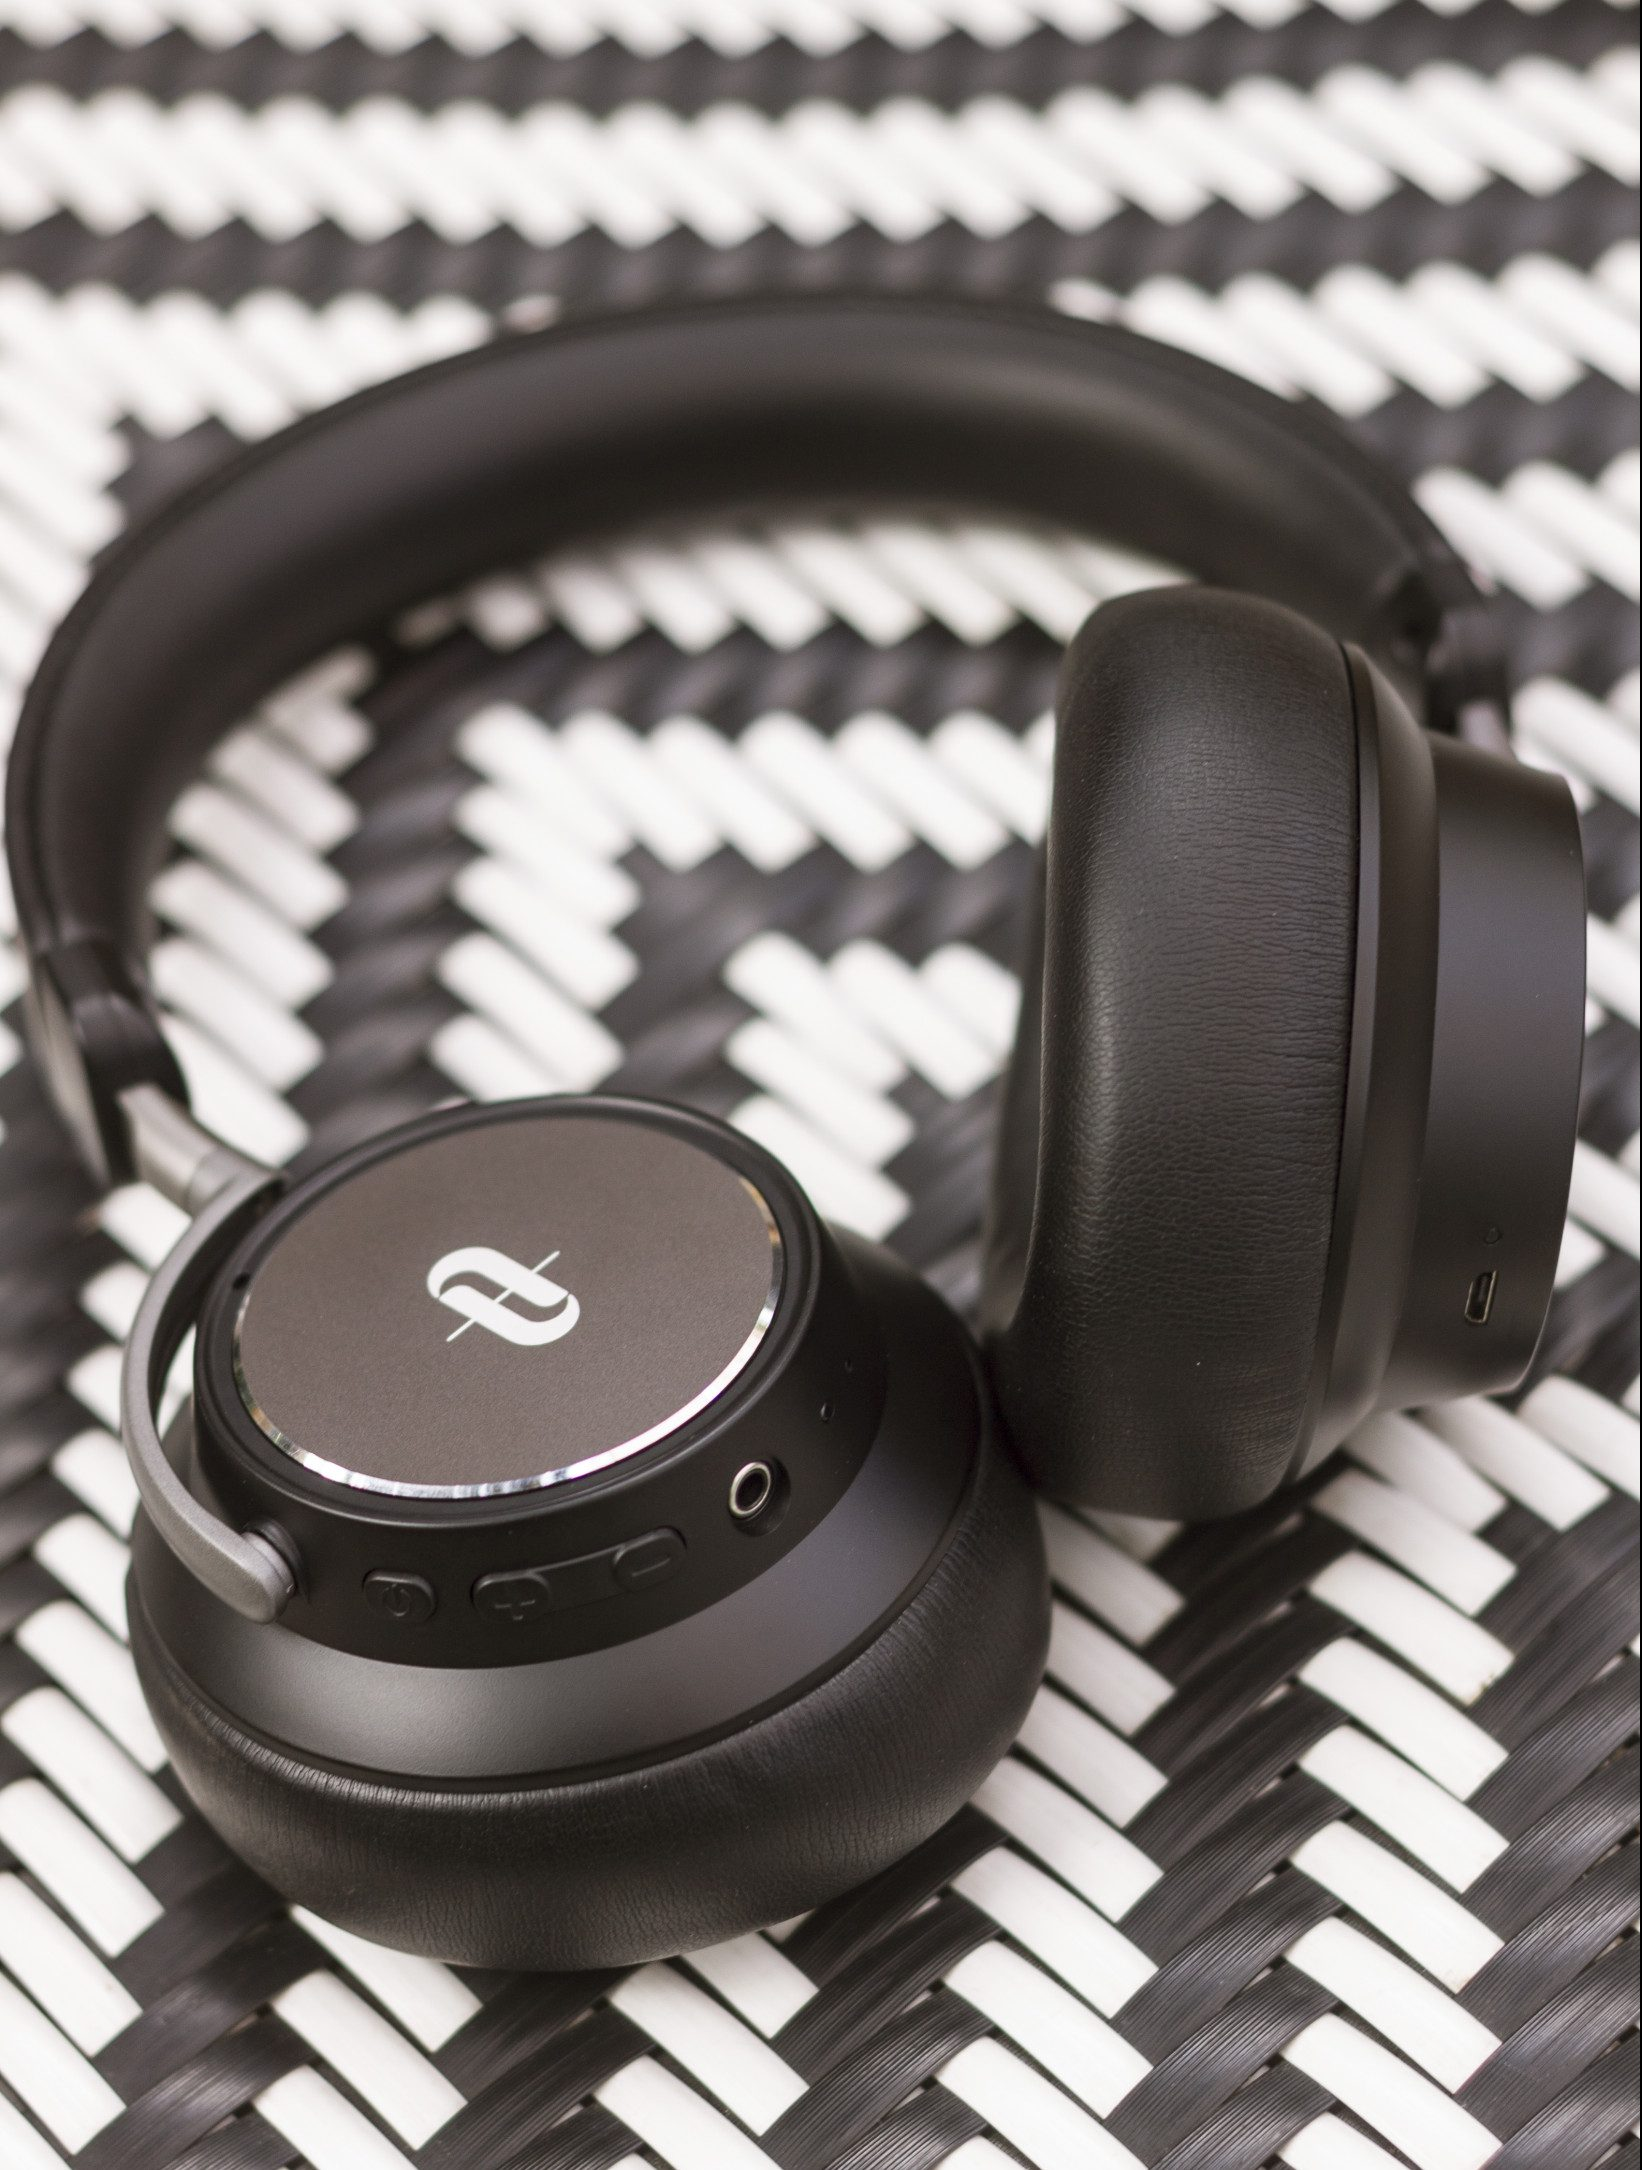 These headphones look good and last long on a single charge